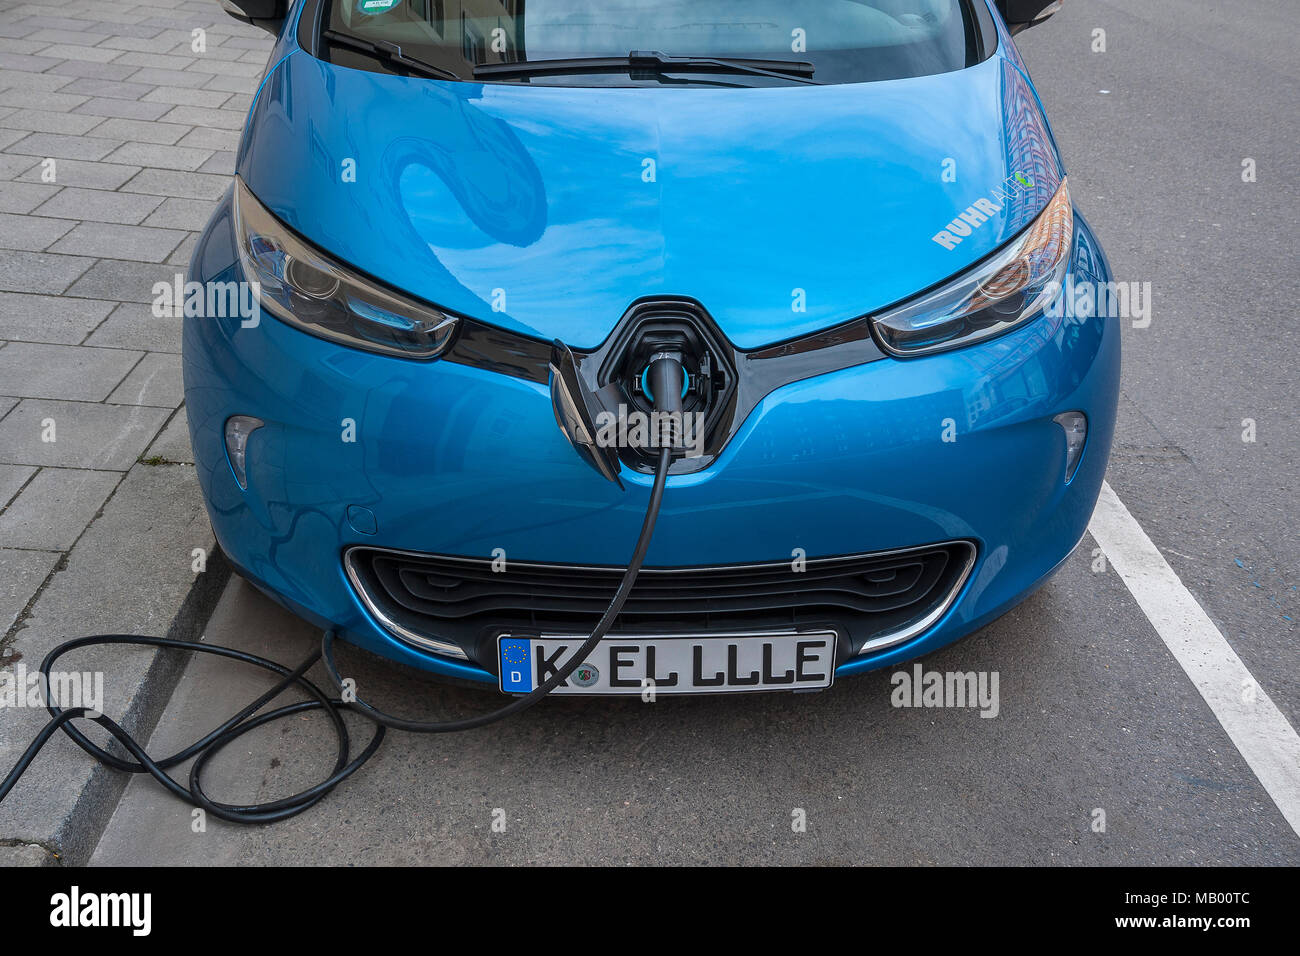 Electric car is charging charging cable, Munich, Bavaria, Germany - Stock Image